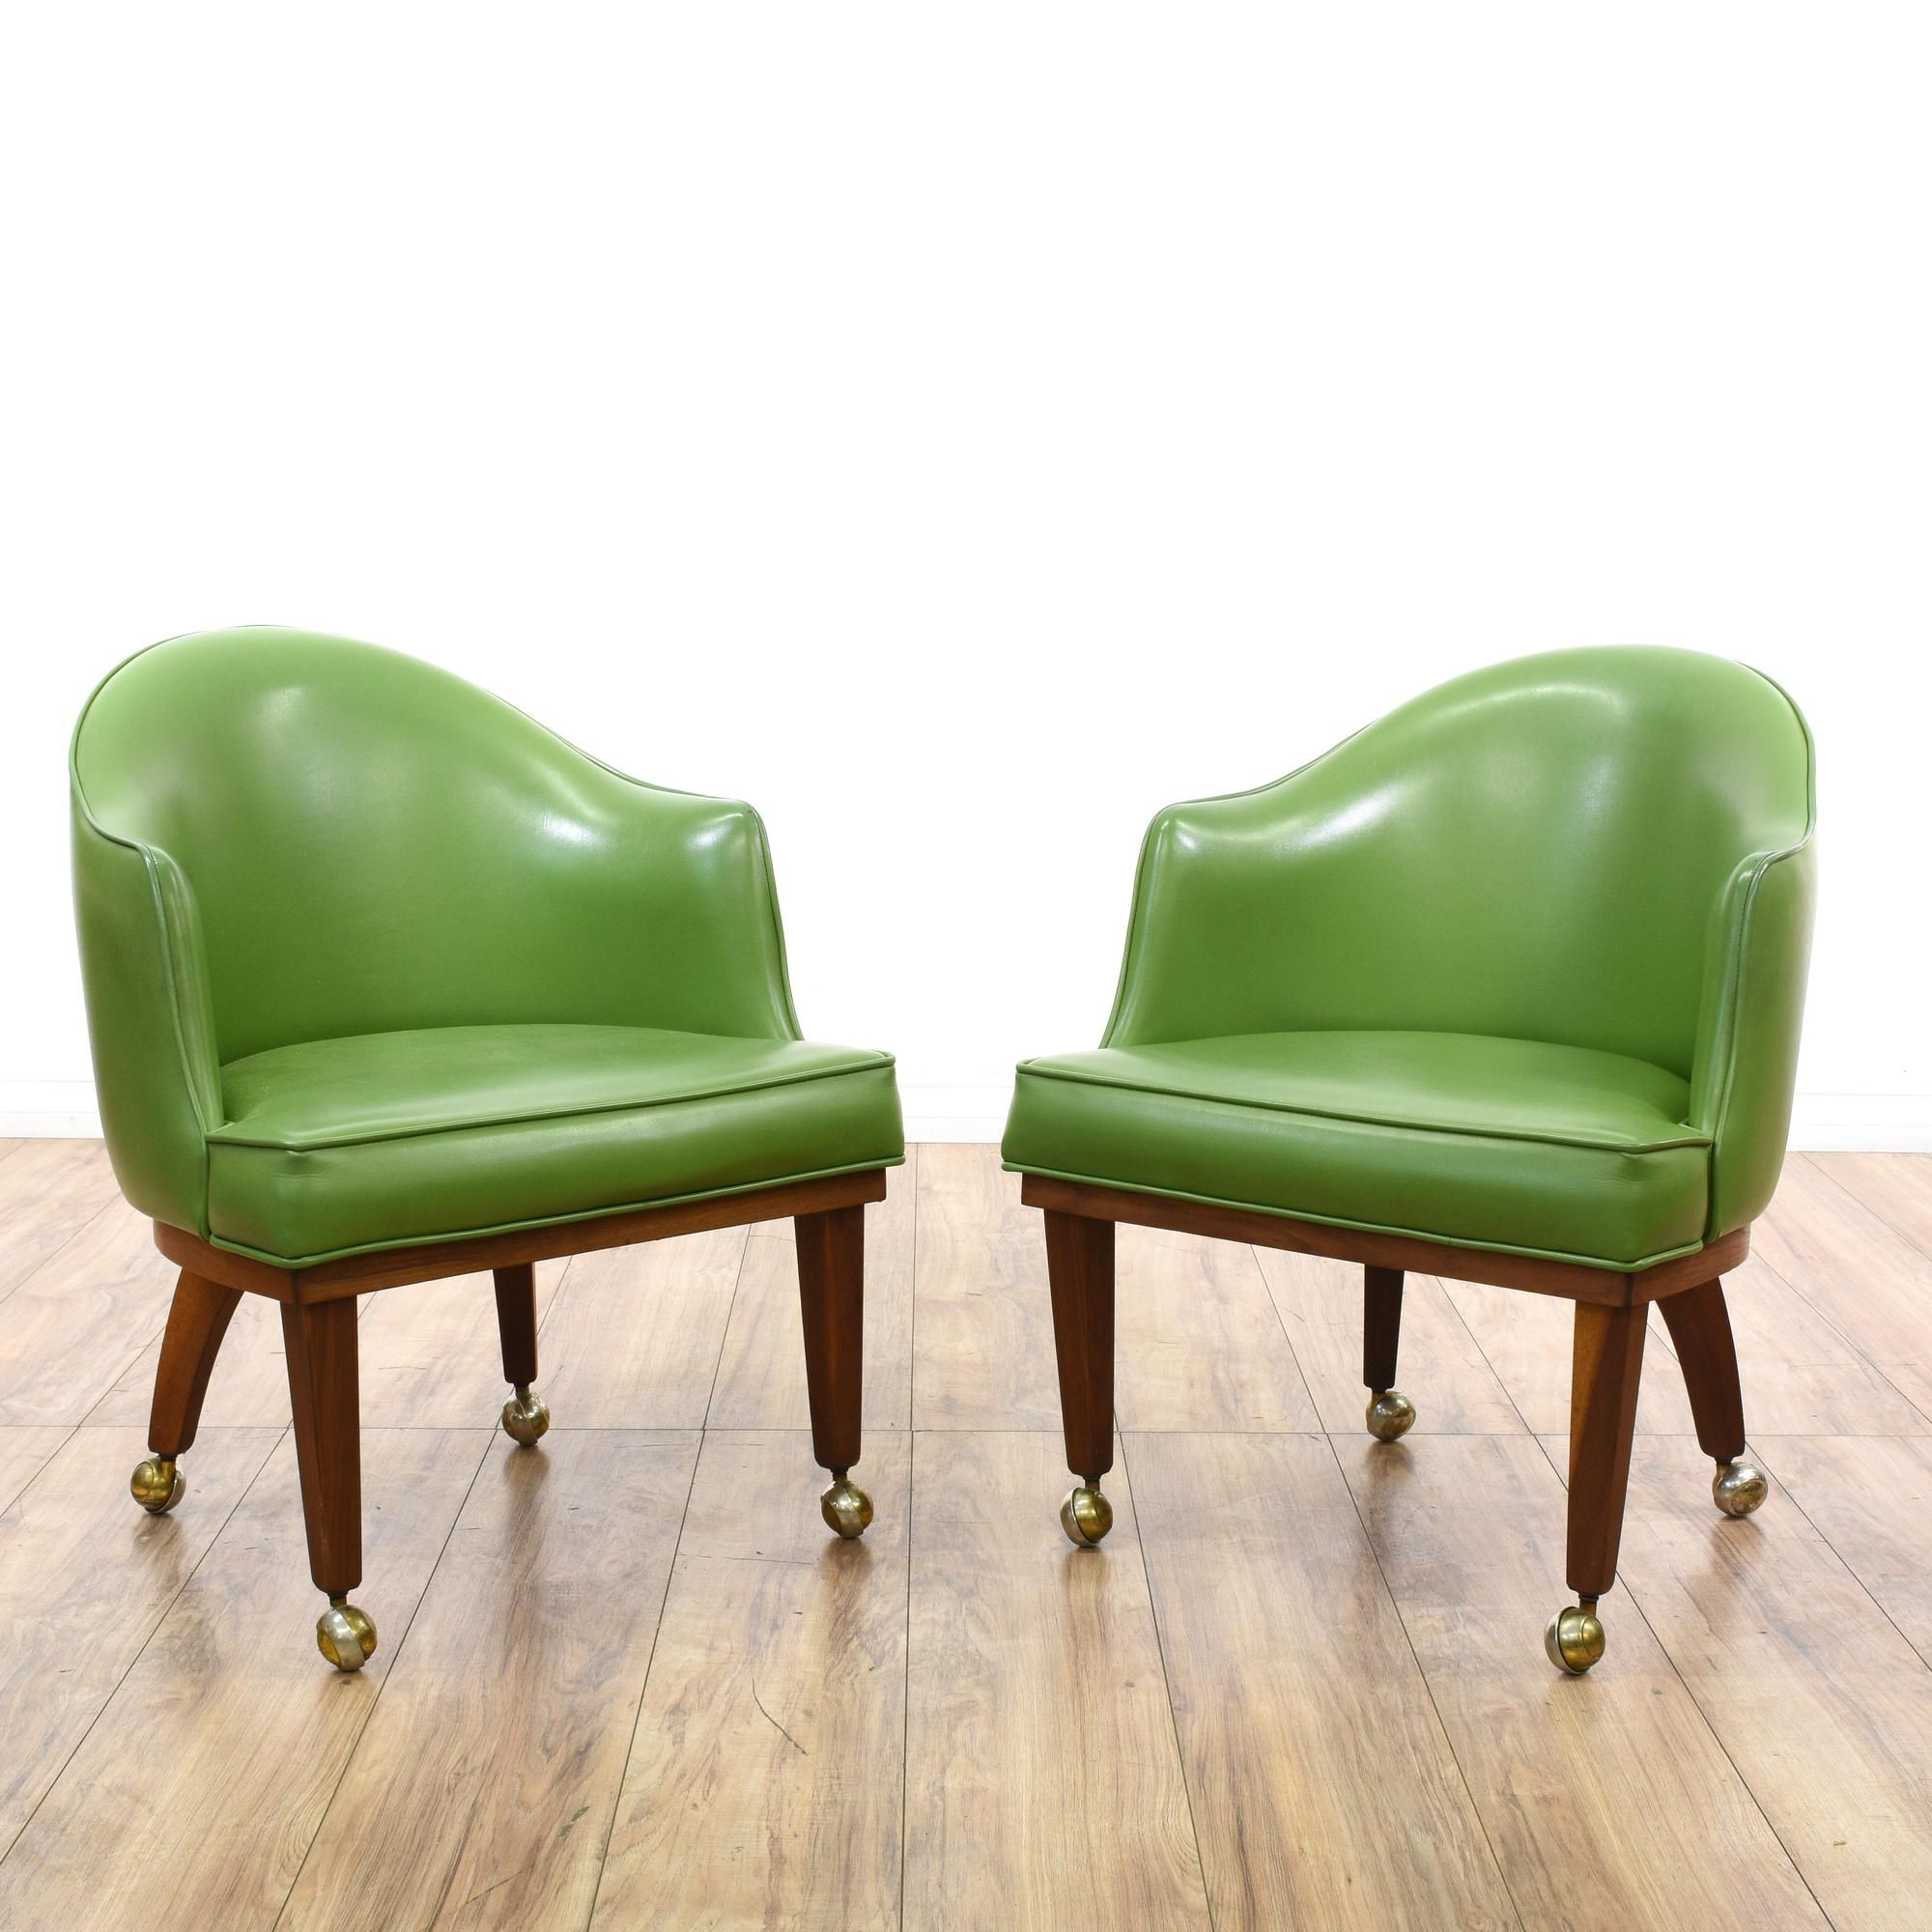 Upholstered Game Table Chairs - Pair of chet beardsley green vinyl chairs 2 game tablesaccent